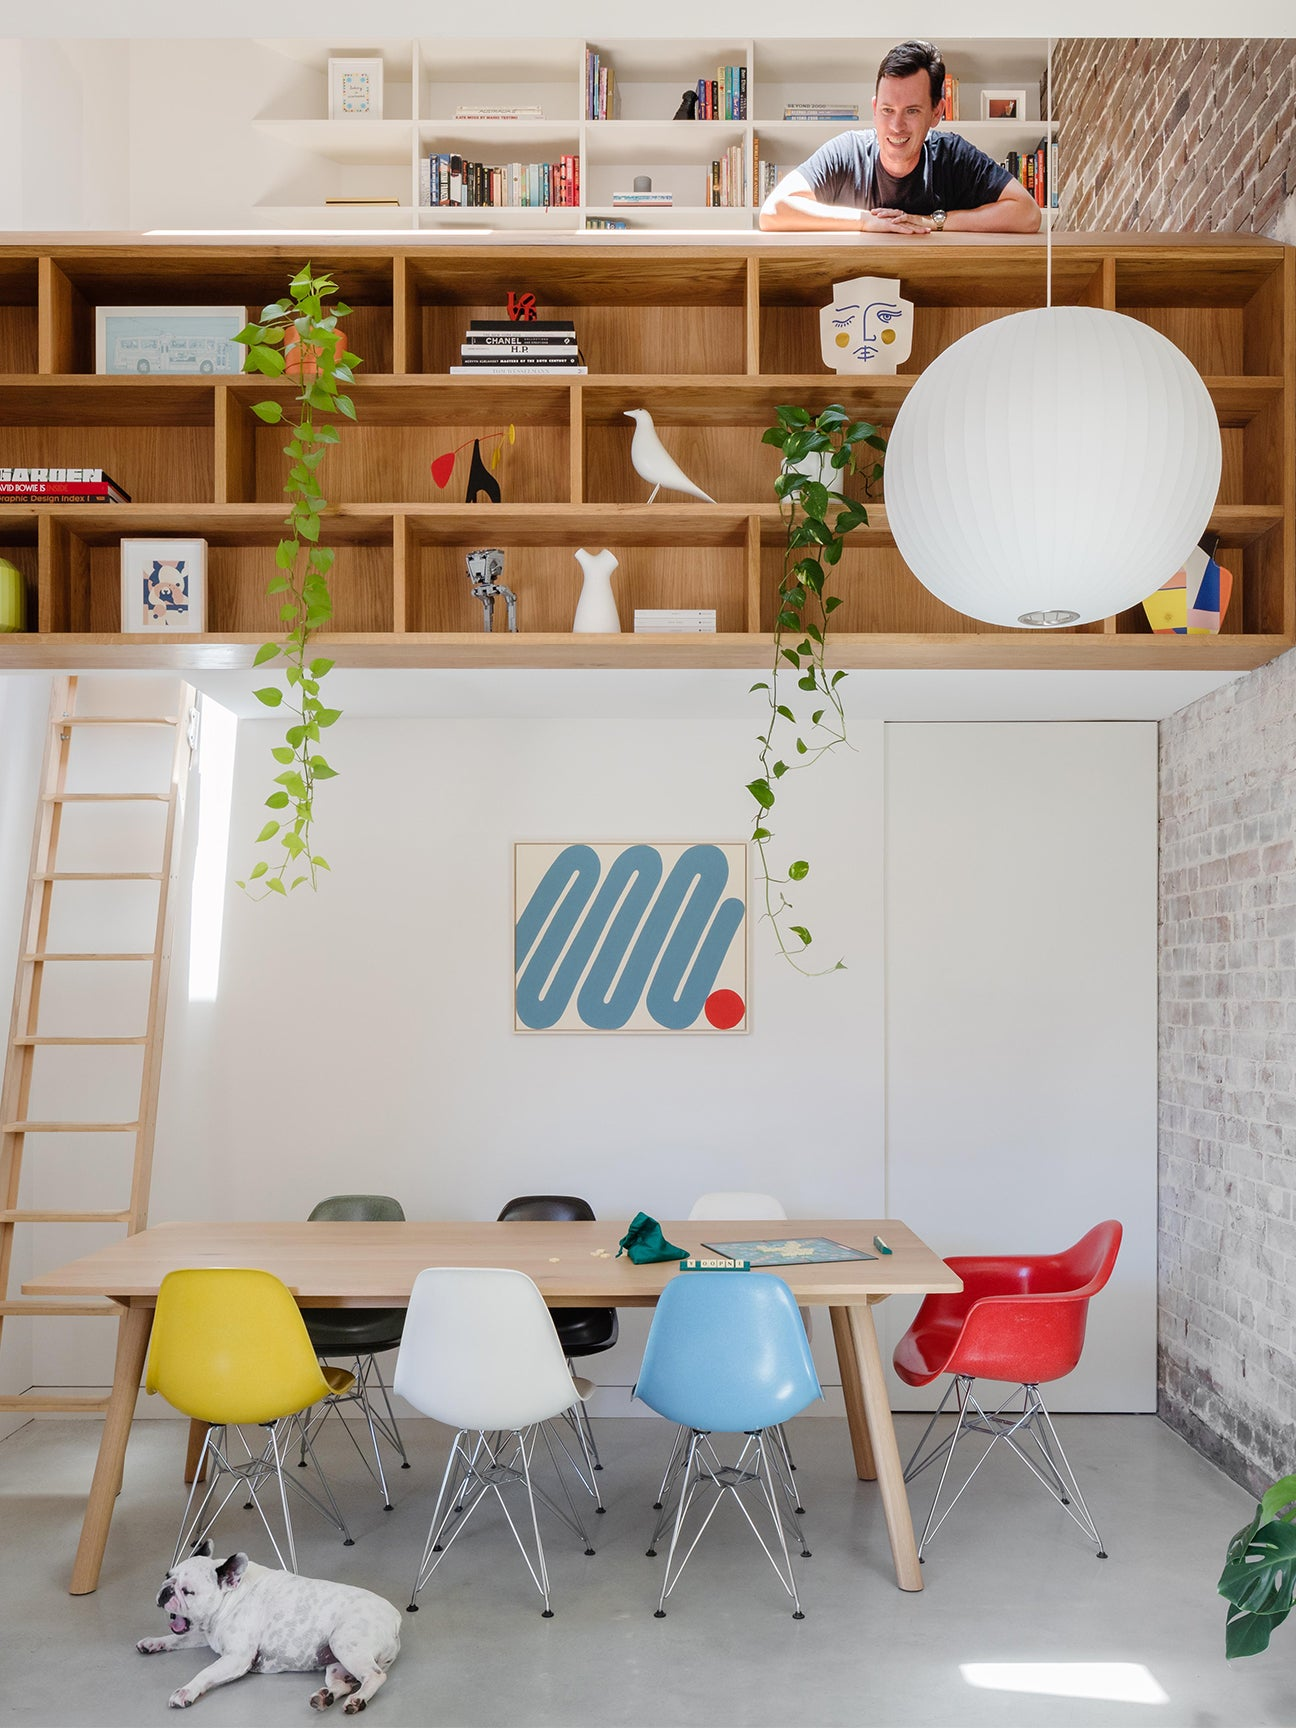 lofted office over dining table with man looking down